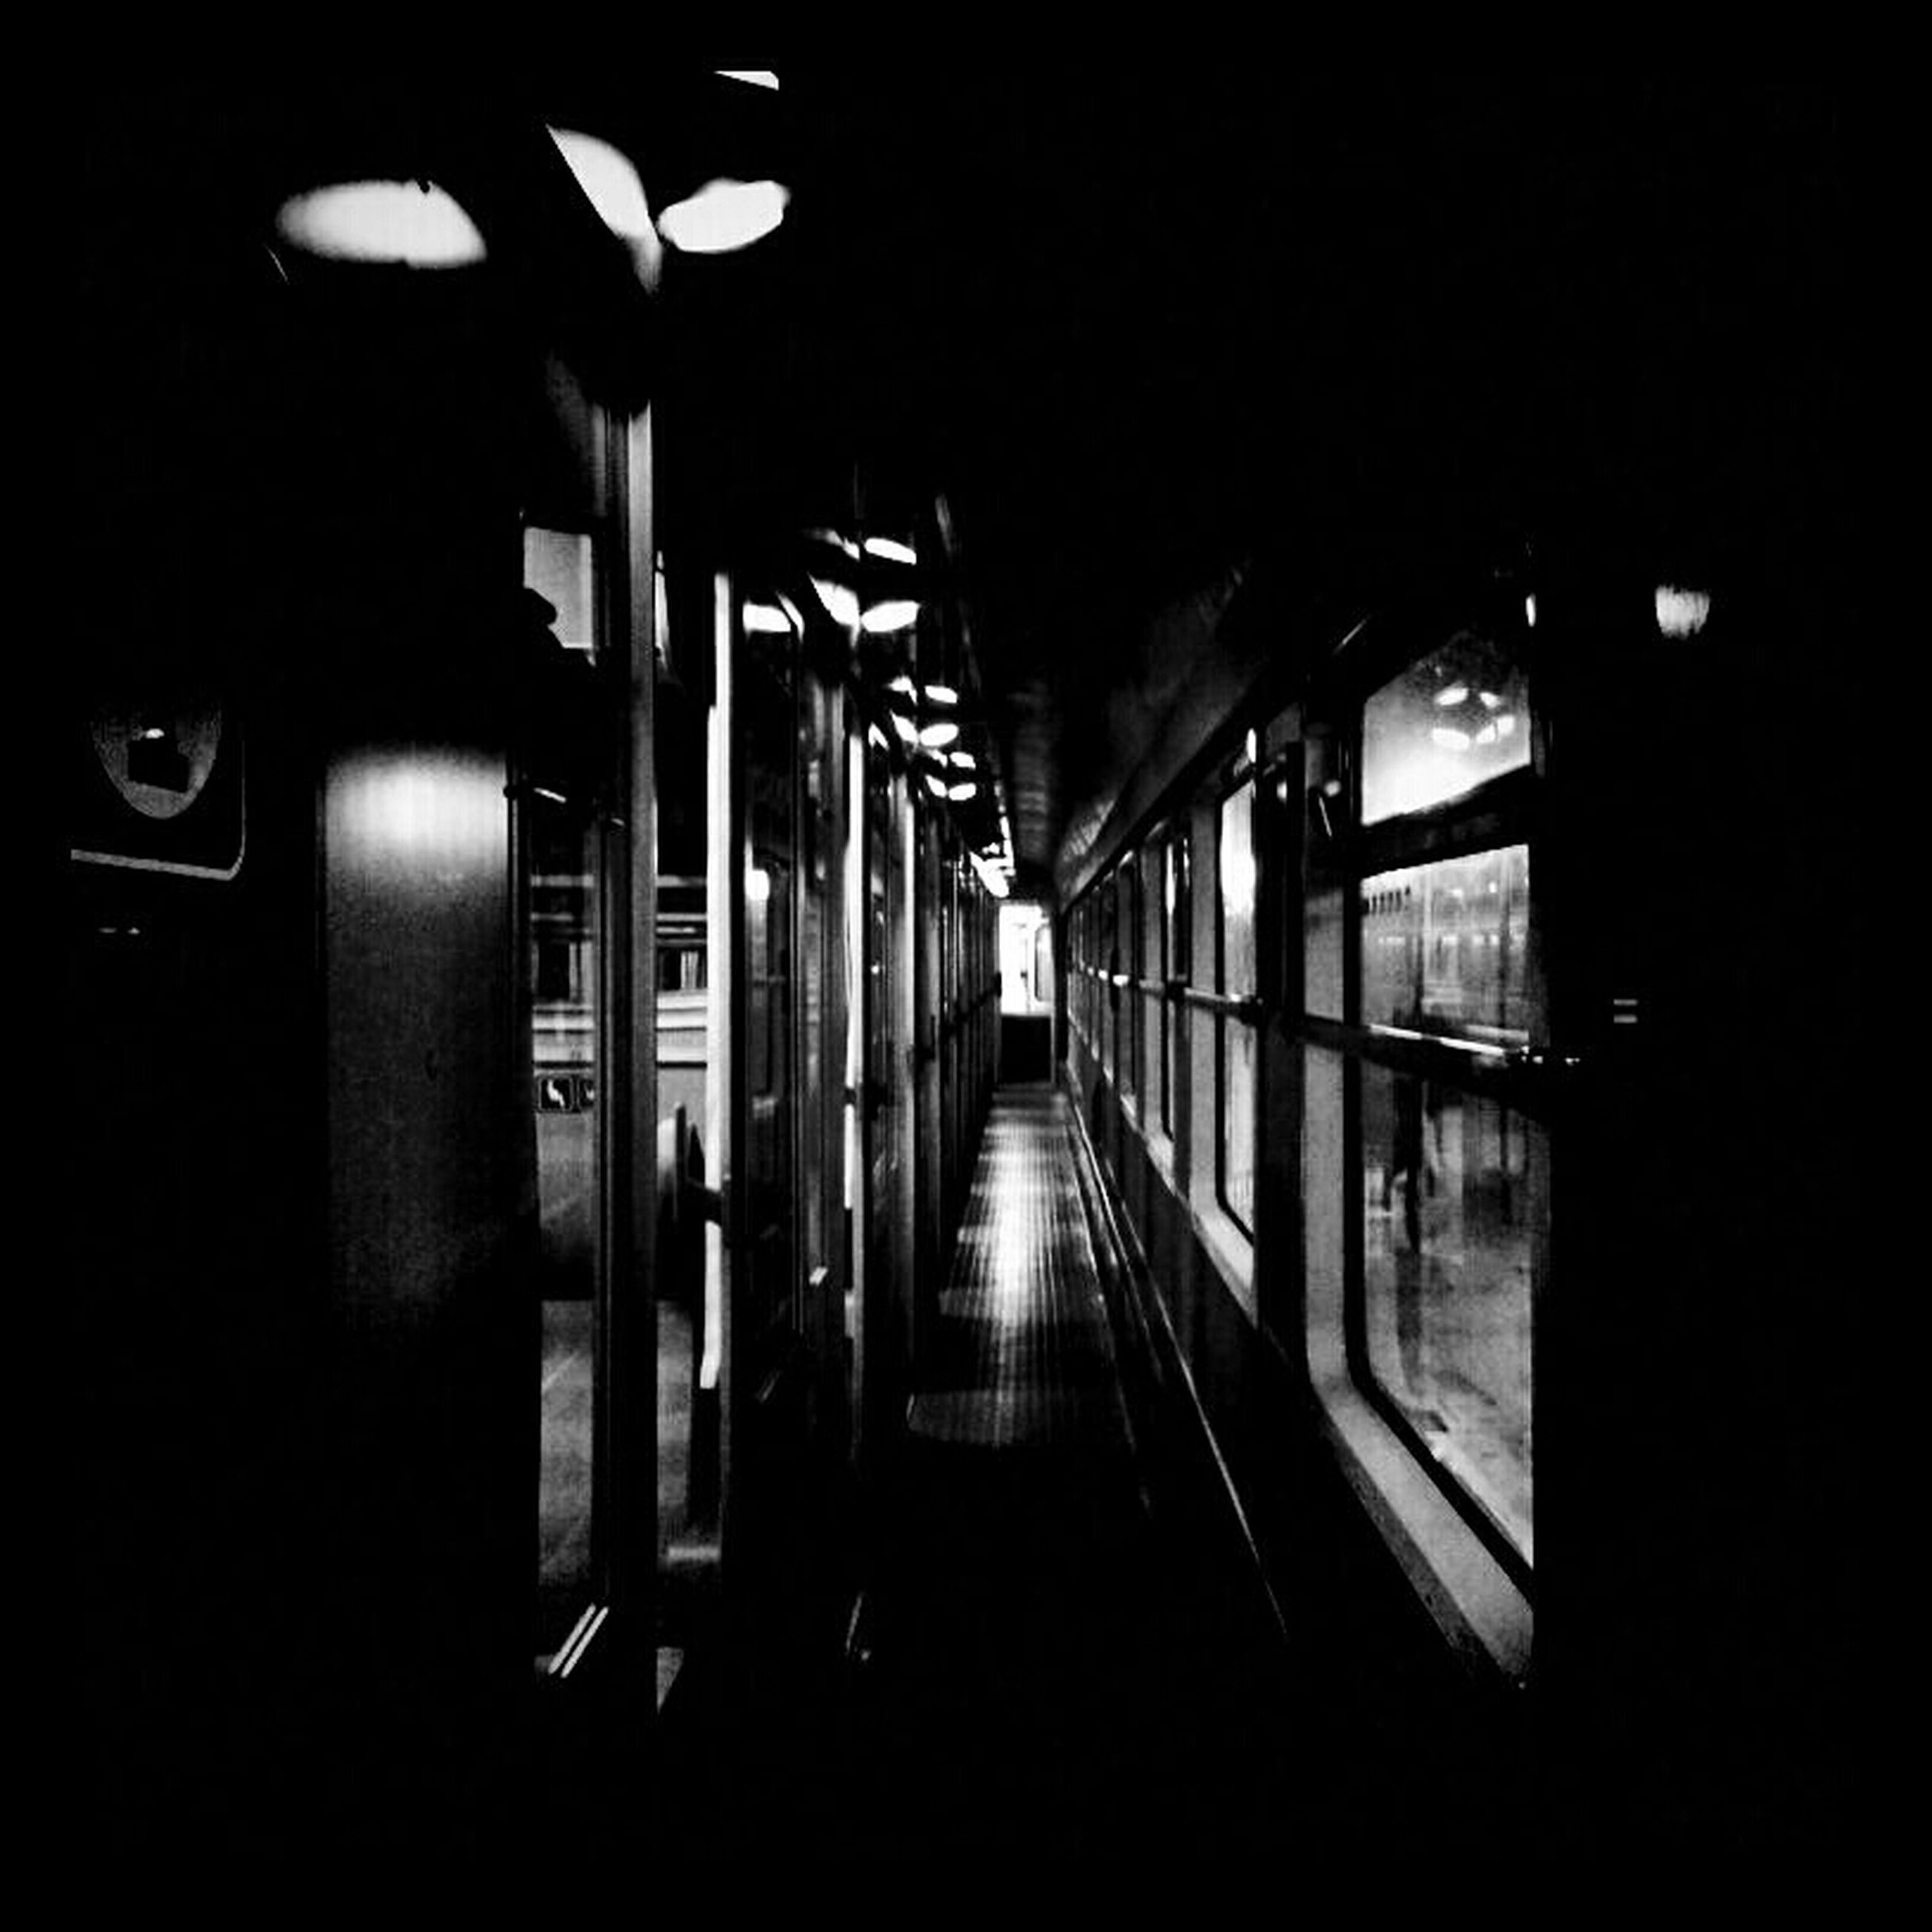 indoors, the way forward, illuminated, architecture, built structure, empty, transportation, night, corridor, diminishing perspective, dark, tunnel, absence, door, narrow, long, no people, subway, building, wall - building feature